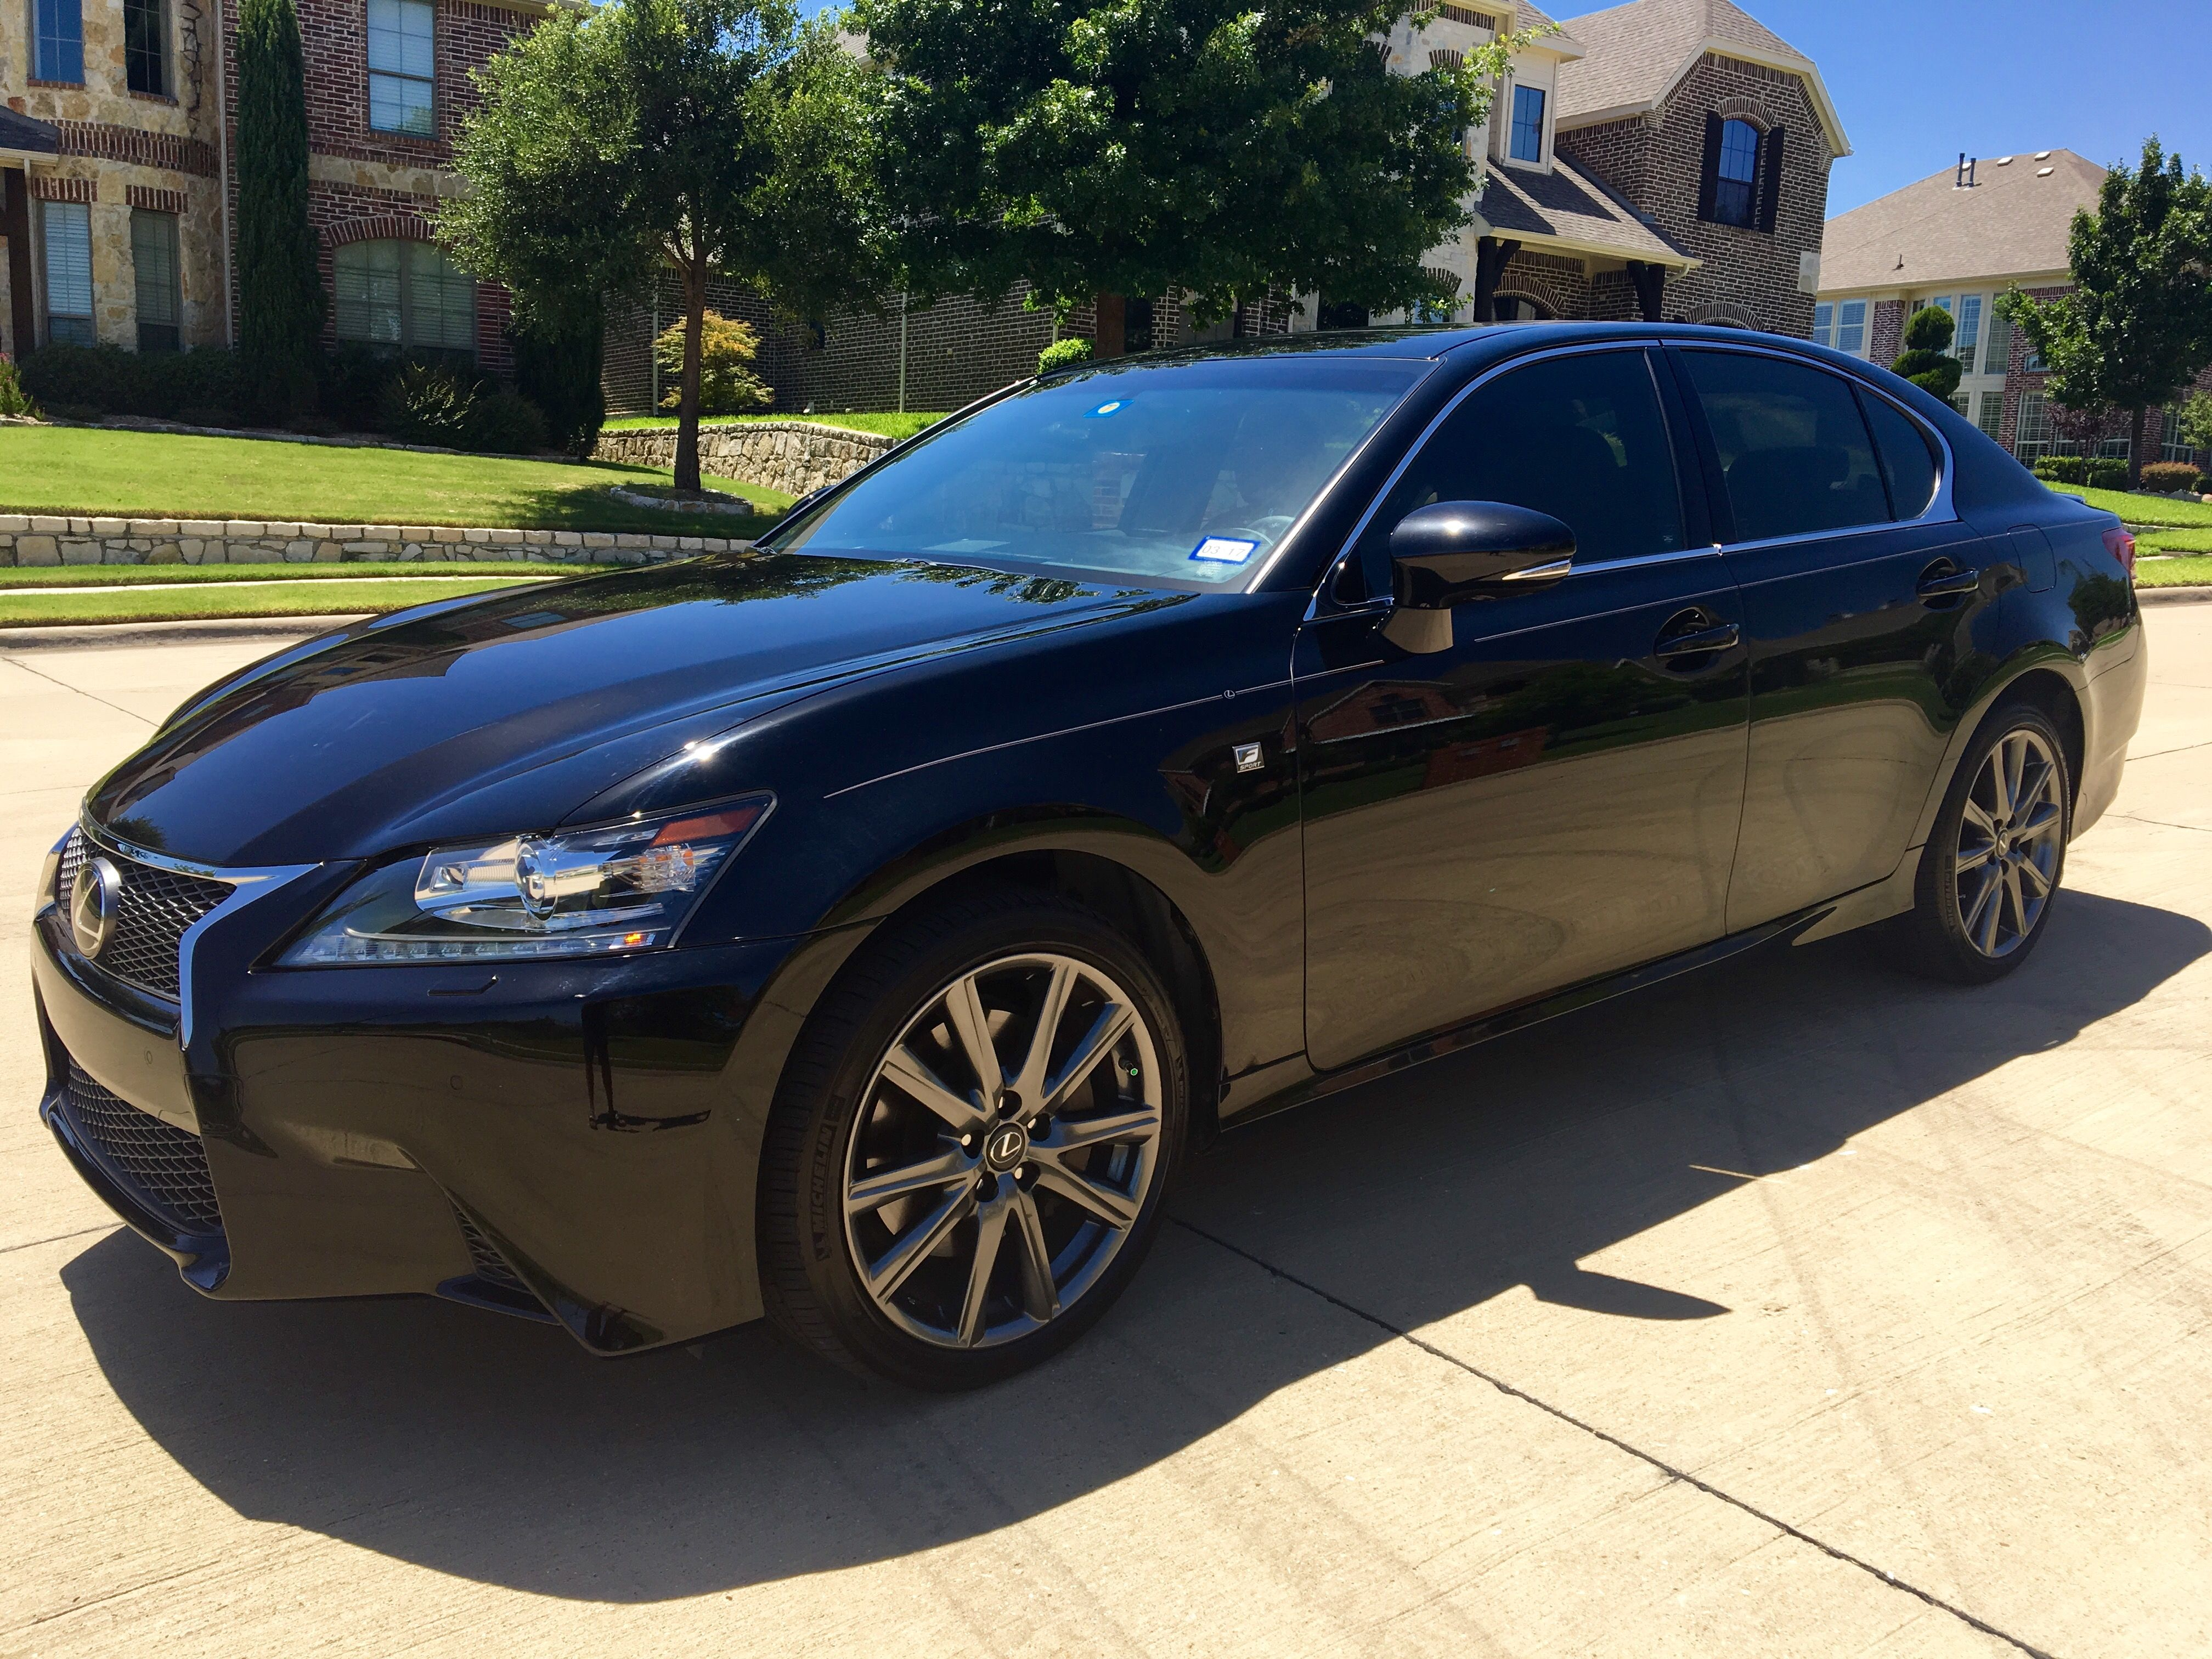 2015 Lexus GS350 F Sport All Wheel Drive $47k dallas